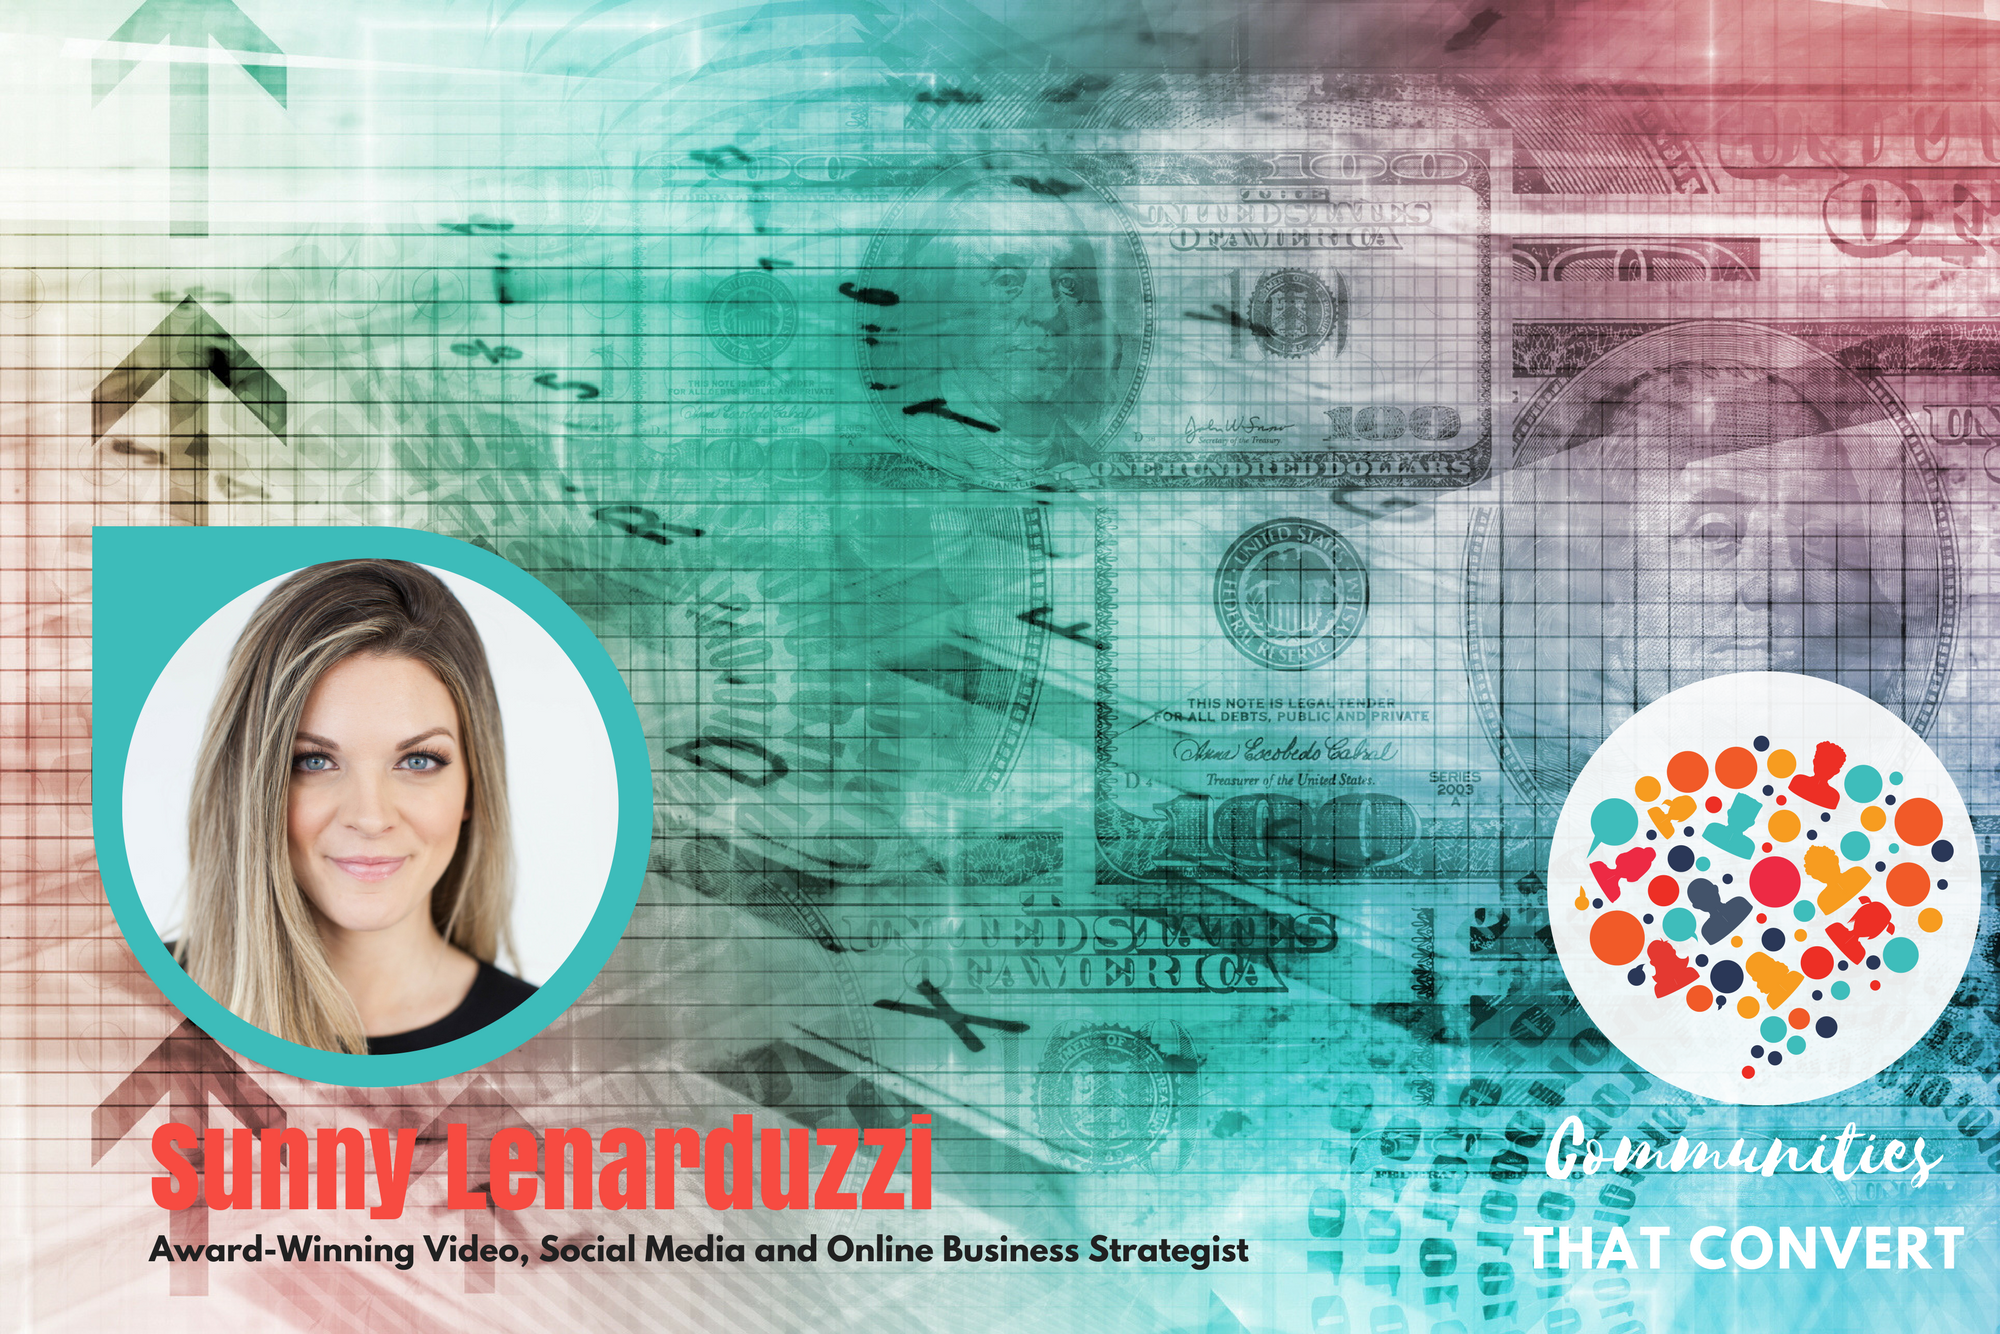 How to Build a Converting Community on YouTube with Sunny Lenarduzzi